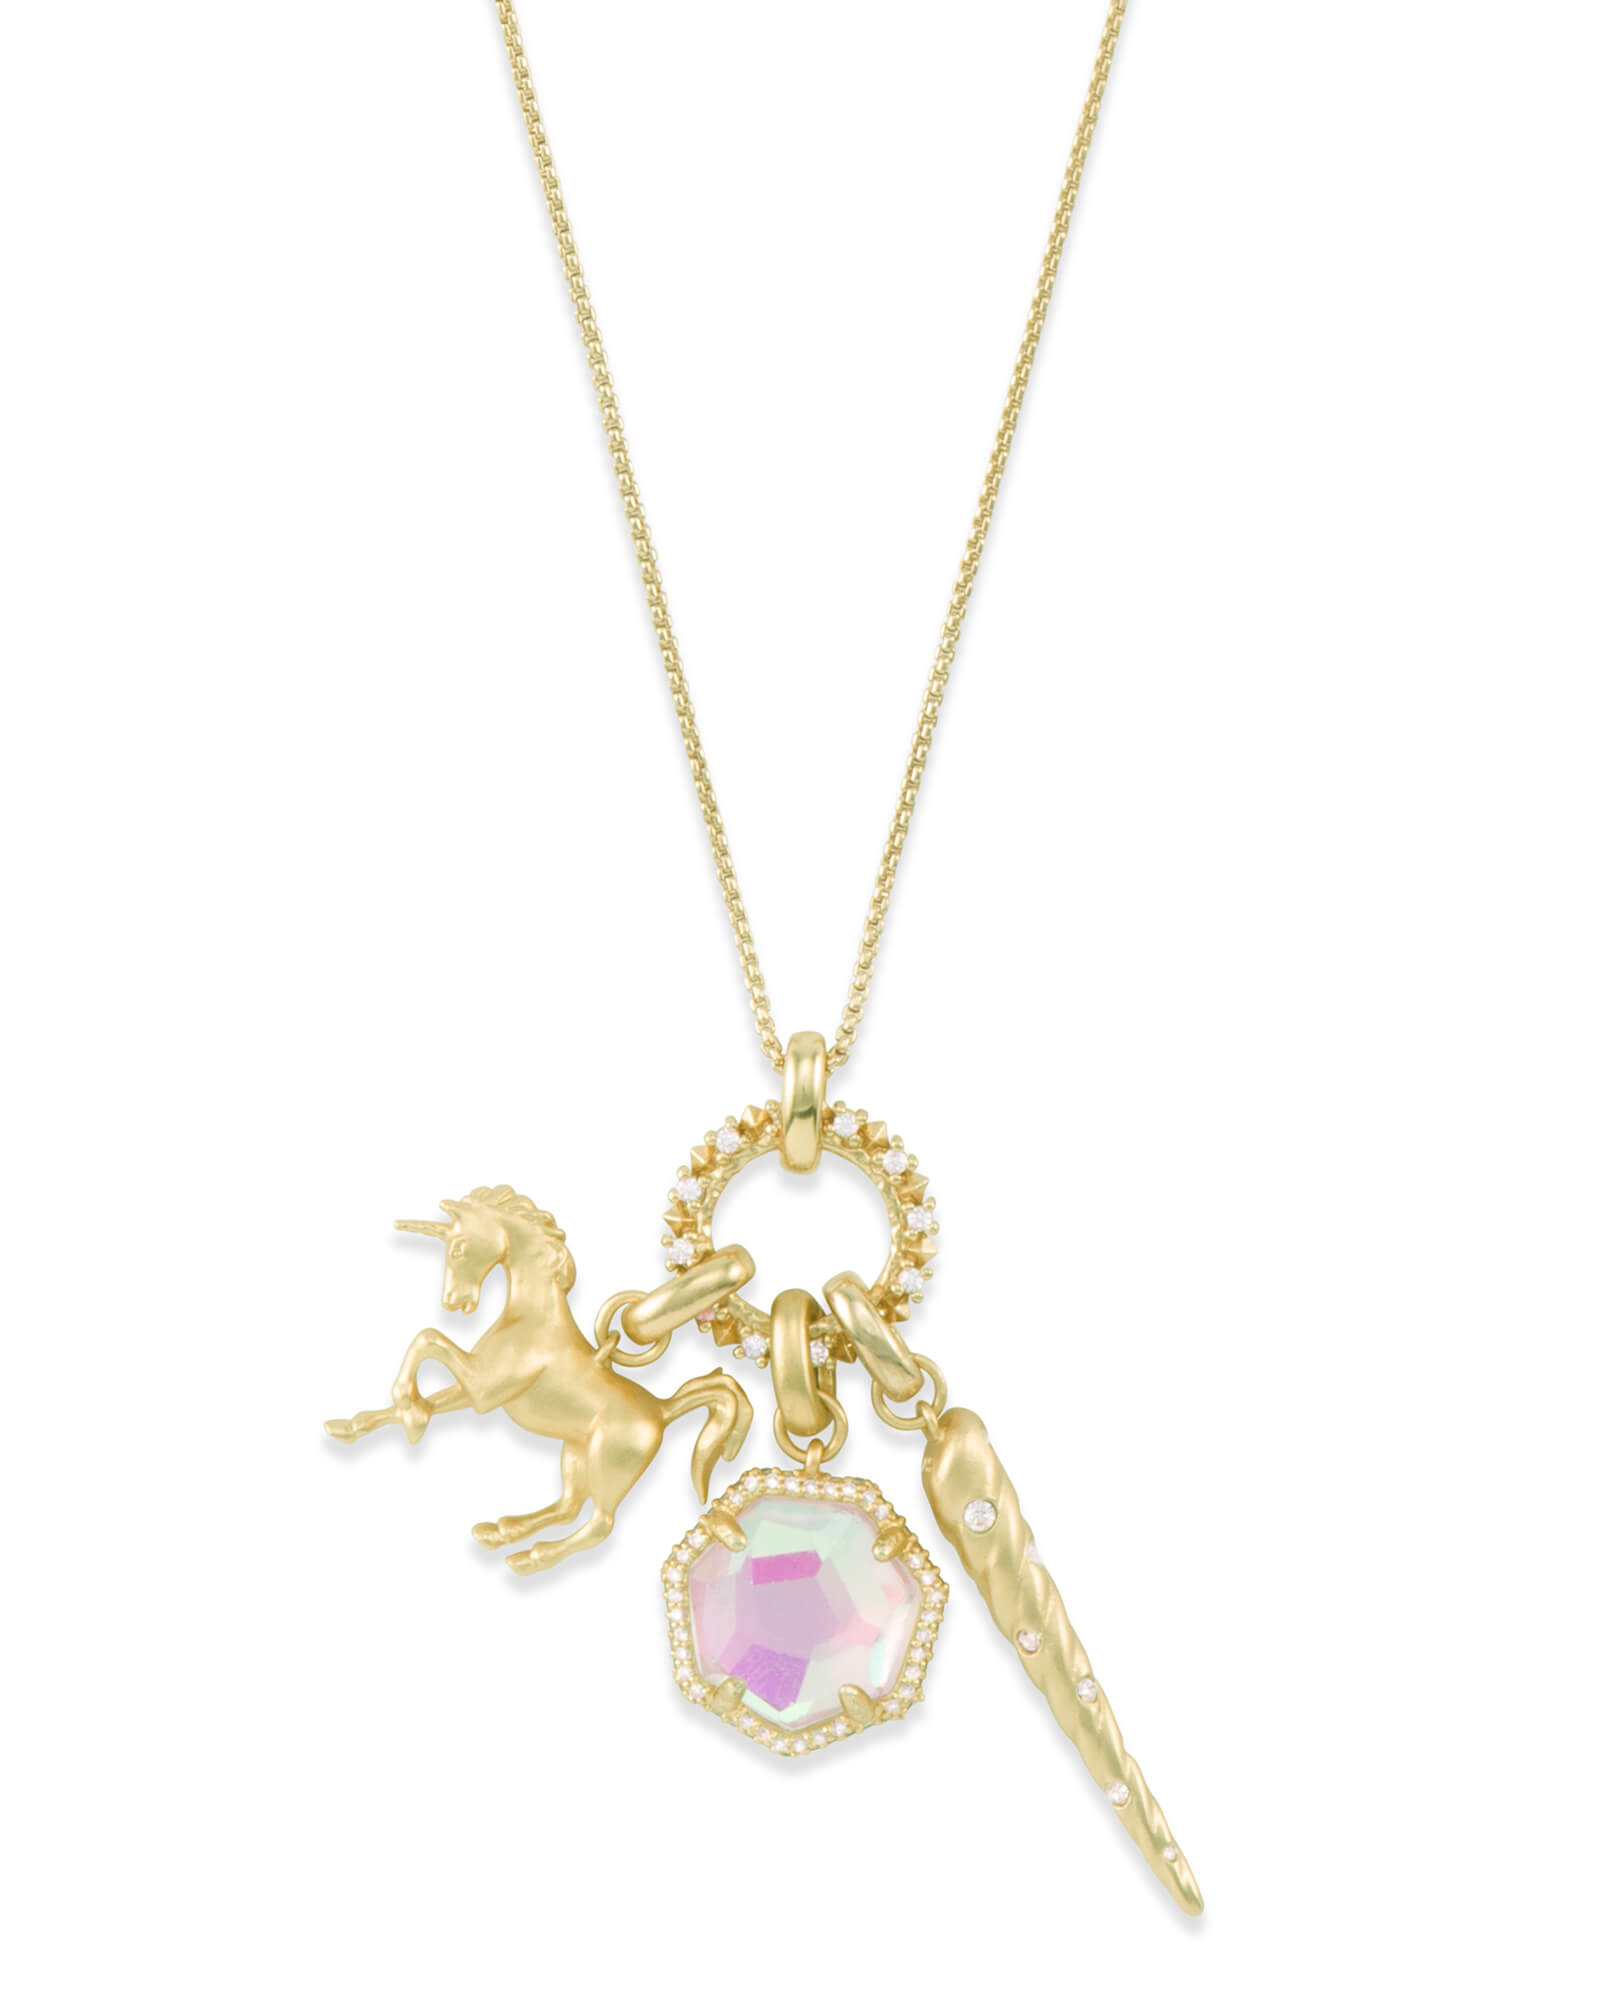 Magical Charm Necklace Set in Gold